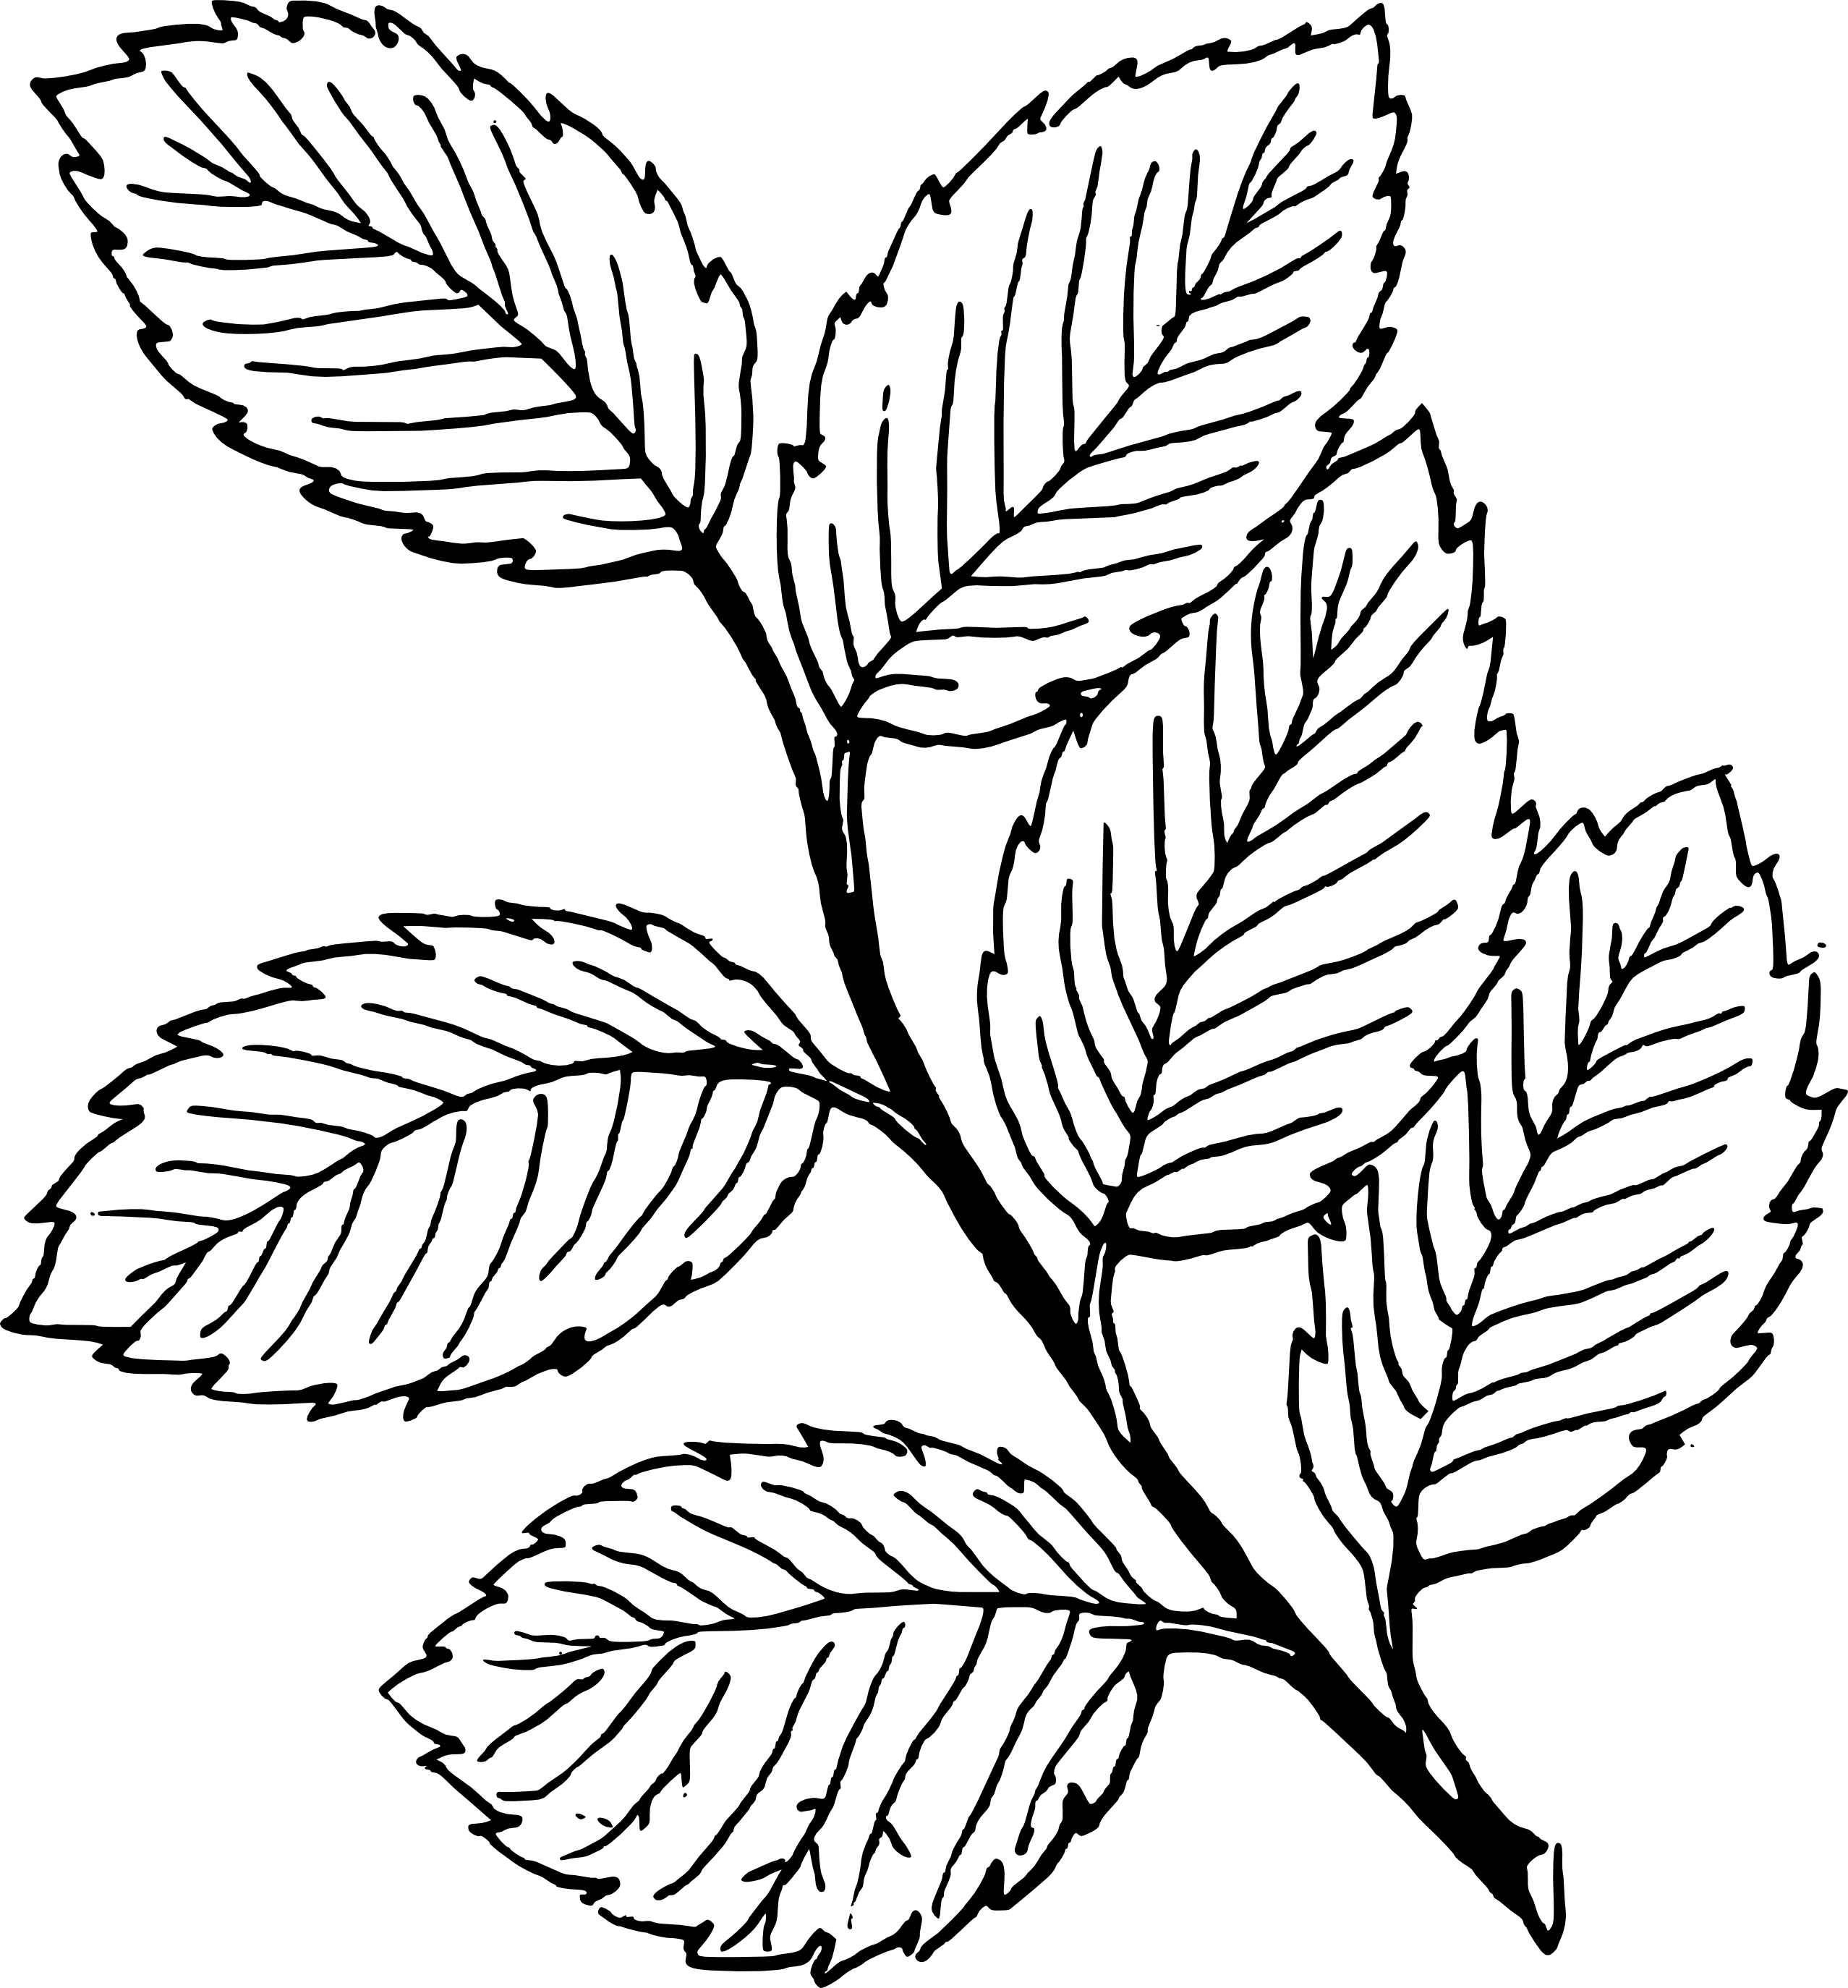 Leaves  black and white fall leaf clipart black and white free